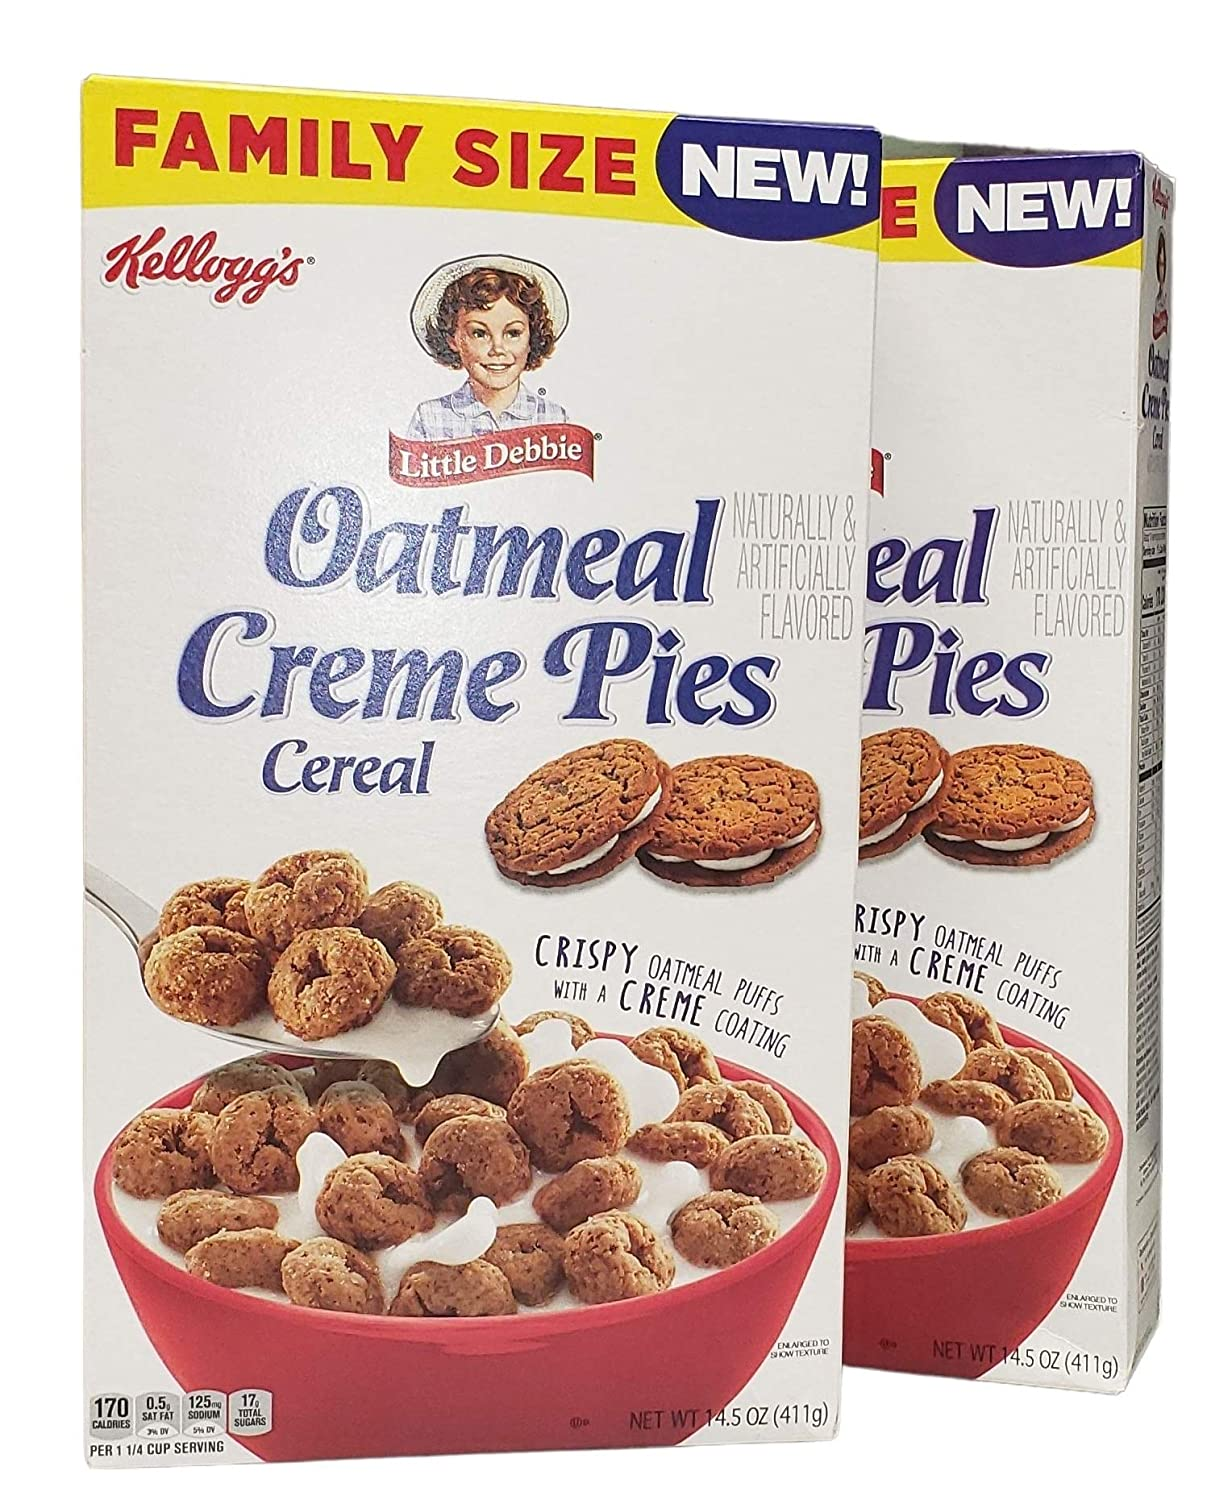 Oatmeal Creme Pies Cereal 14.5 oz (Pack of 2)